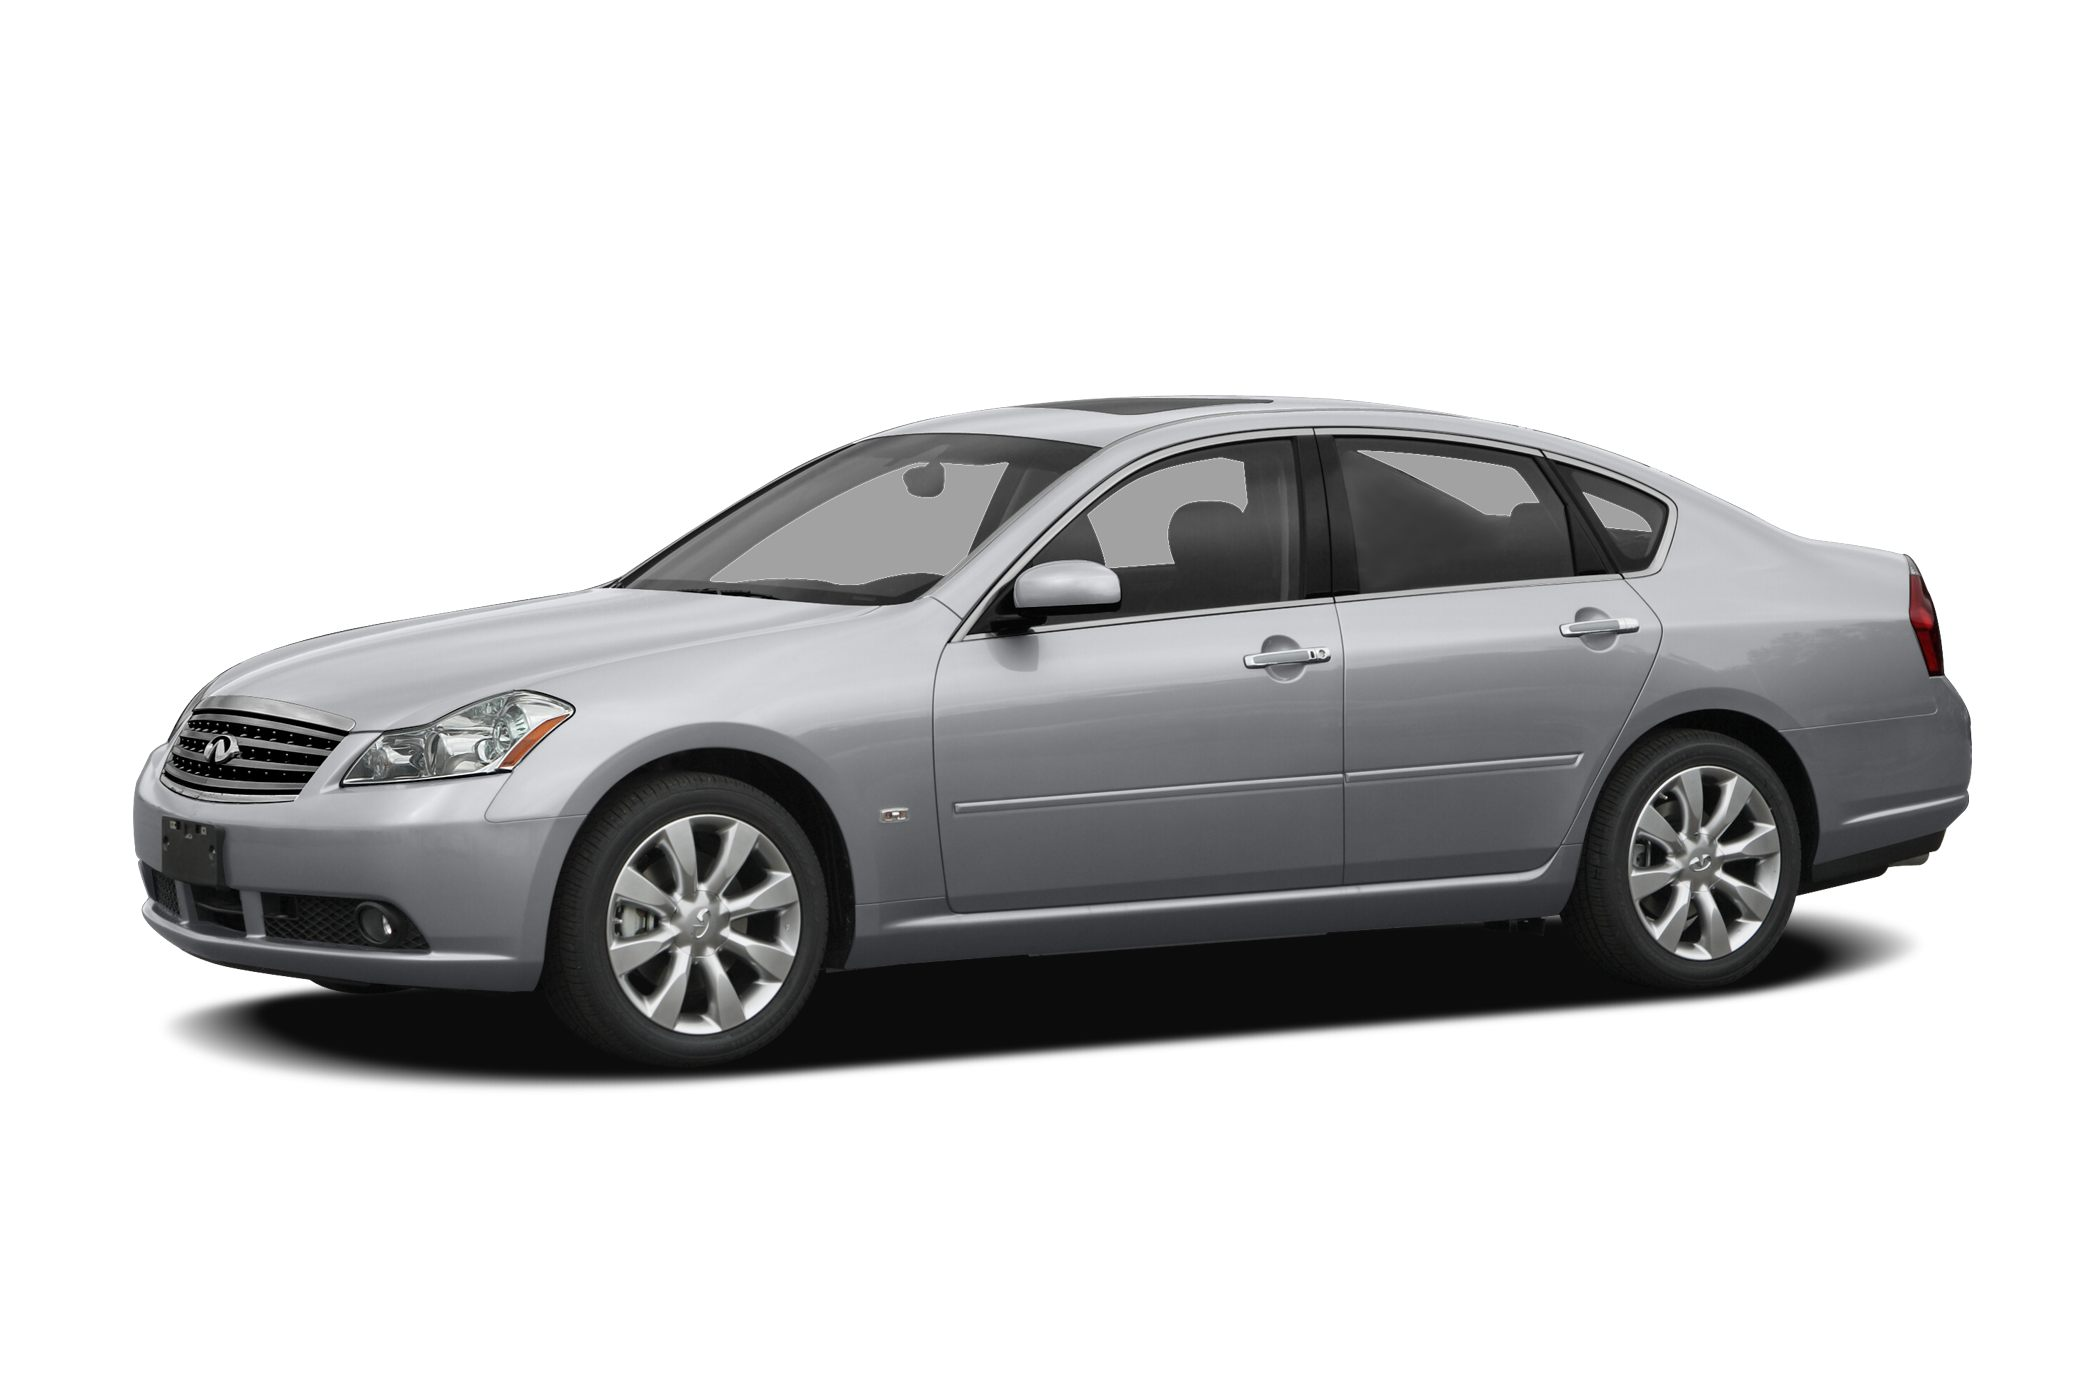 2008 Infiniti M35 X Sedan for sale in Fairless Hills for $15,900 with 96,206 miles.